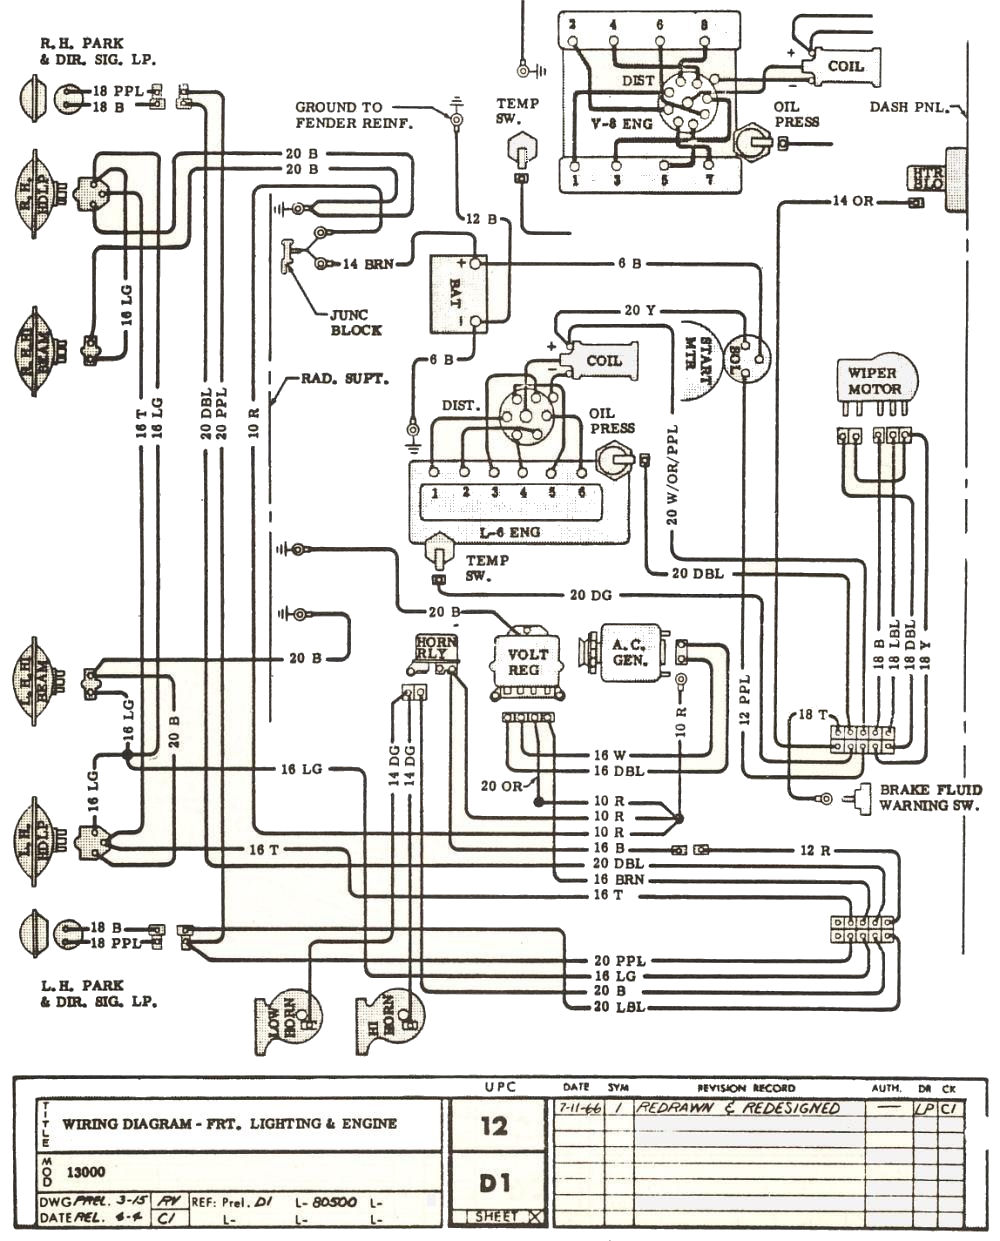 1967 Chevelle Wiring Diagram 1972 Chevelle Engine Wiring